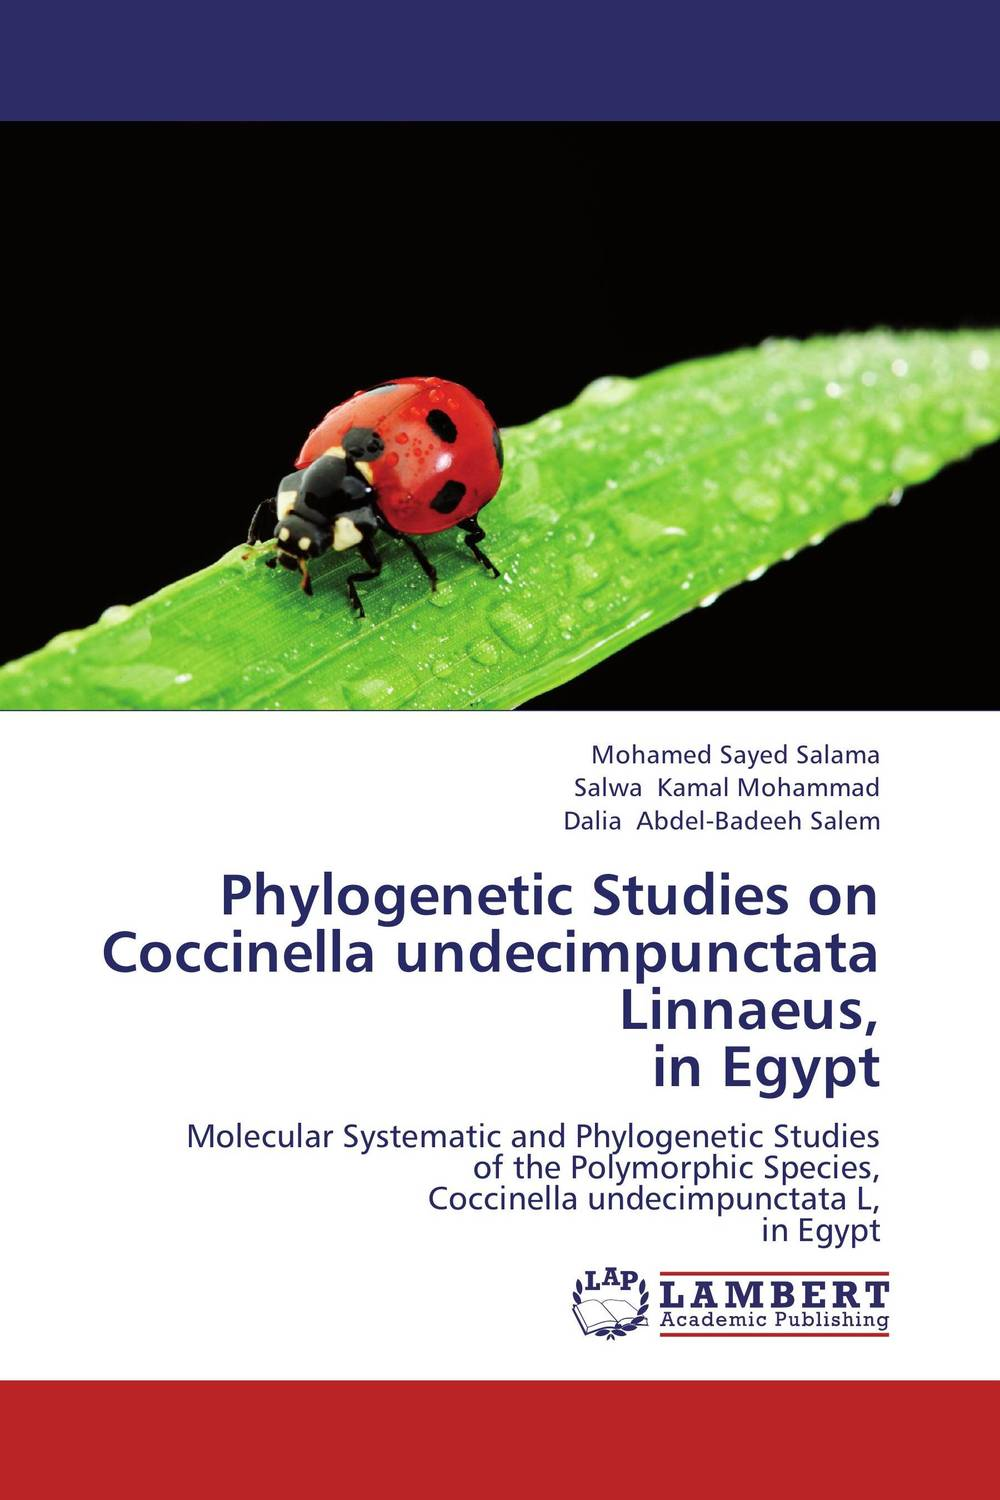 Phylogenetic Studies on Coccinella undecimpunctata Linnaeus, in Egypt kenya vol 3 aberrations